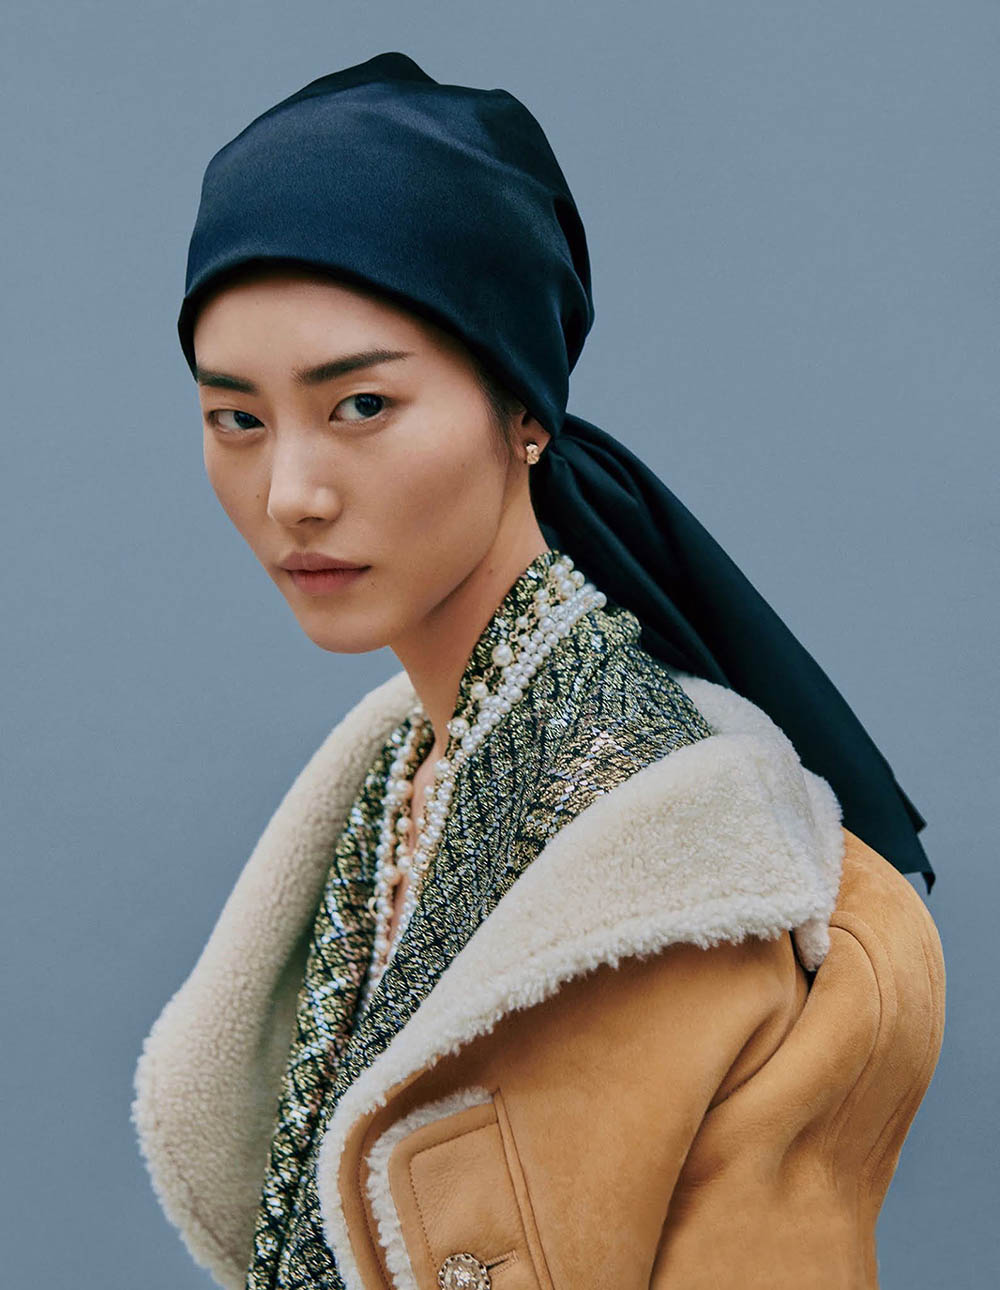 Liu Wen by Yu Cong for Vogue China July 2020